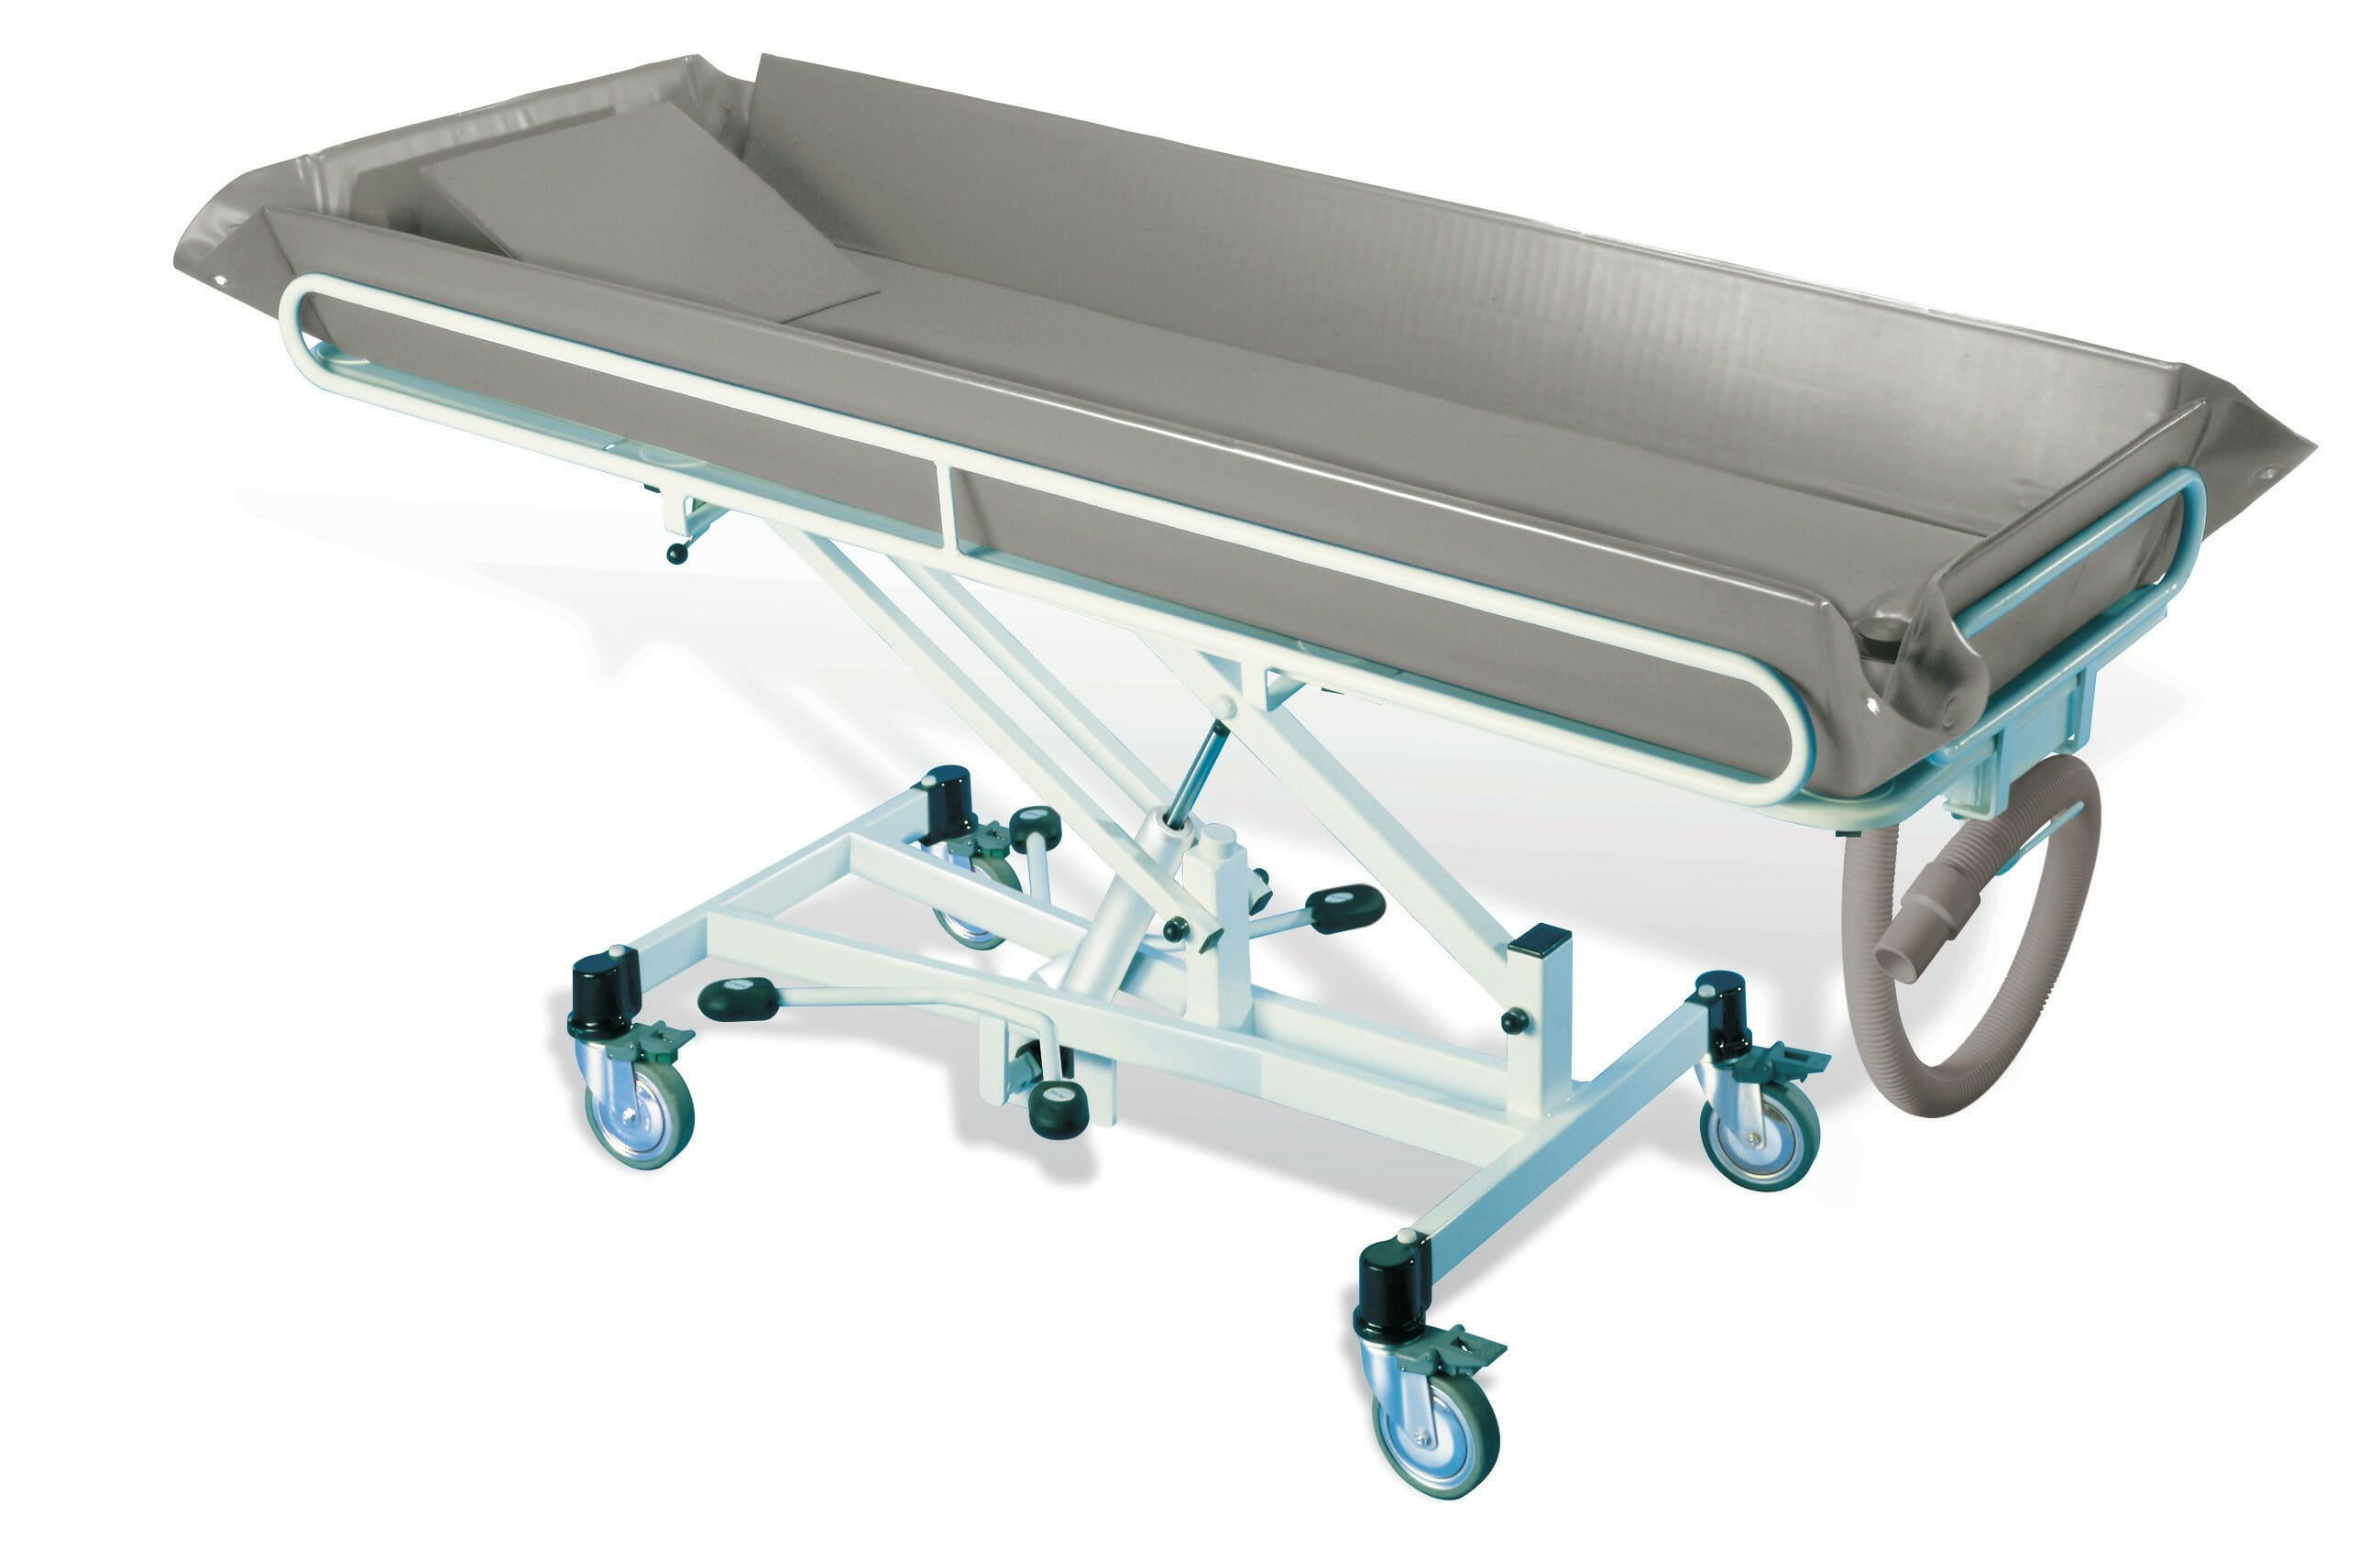 arjohuntleigh couches int beds arjo mobile trolley height clinical streamline variable akron shower medical treatment products